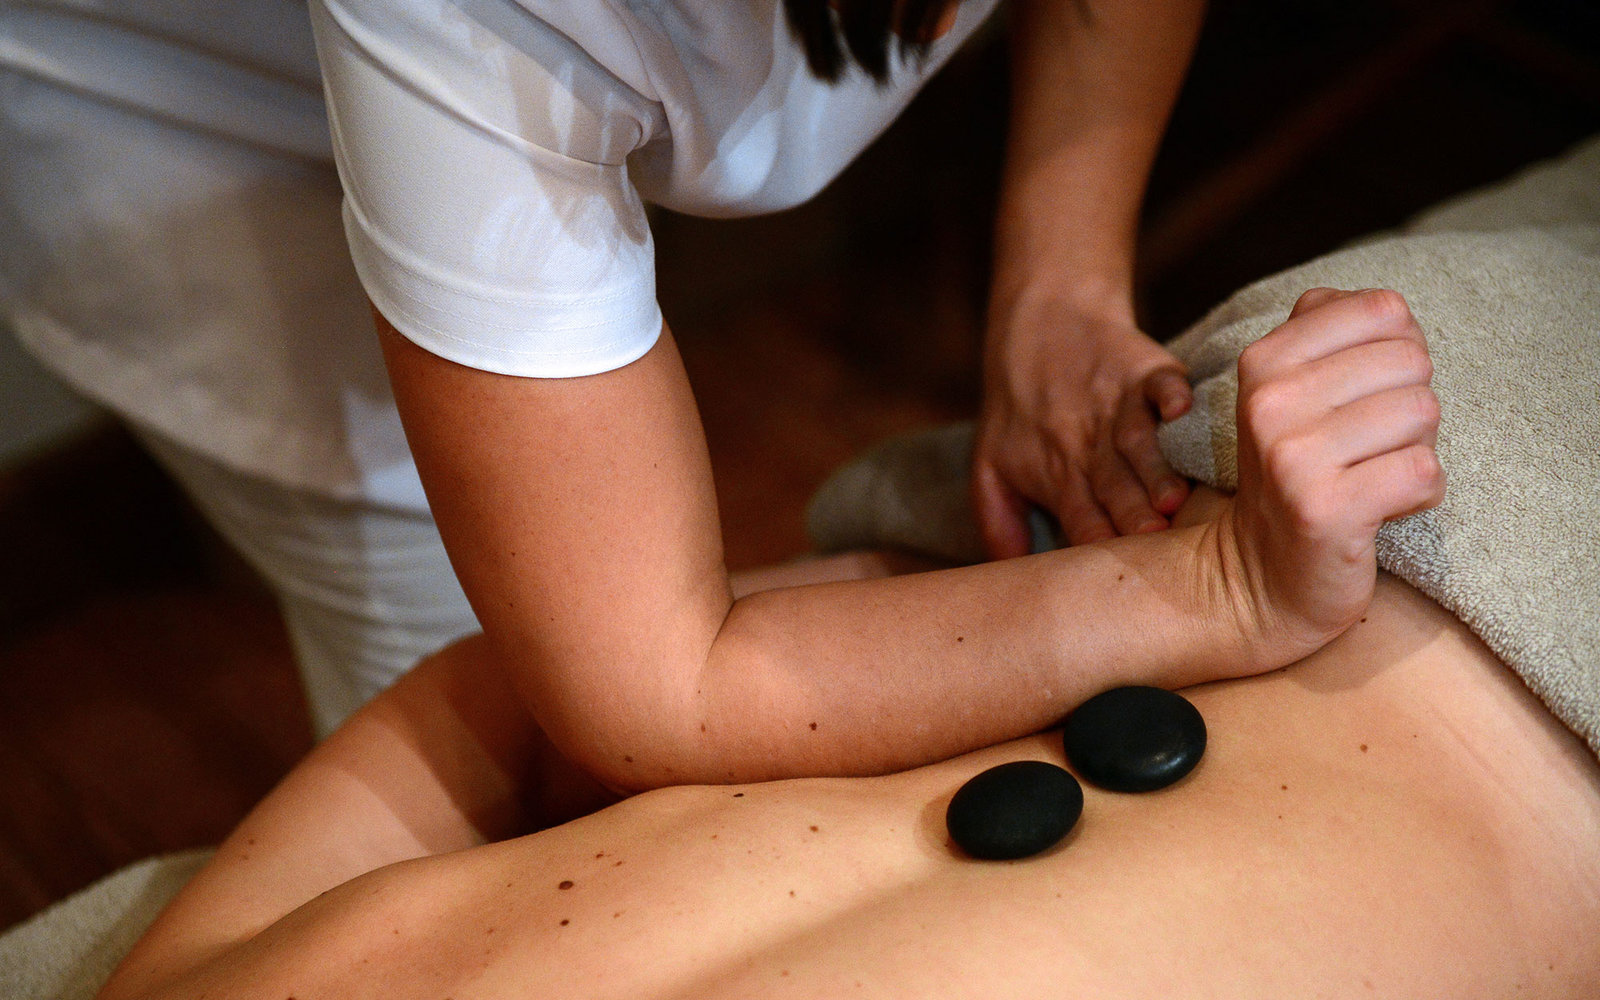 An employee gives a massage to a client at the luxury hotel  Les Barmes de l'Ours , on December 13, 2012 in Val d'Isere, French Alps. AFP PHOTO / FRANCK FIFE        (Photo credit should read FRANCK FIFE/AFP/Getty Images)